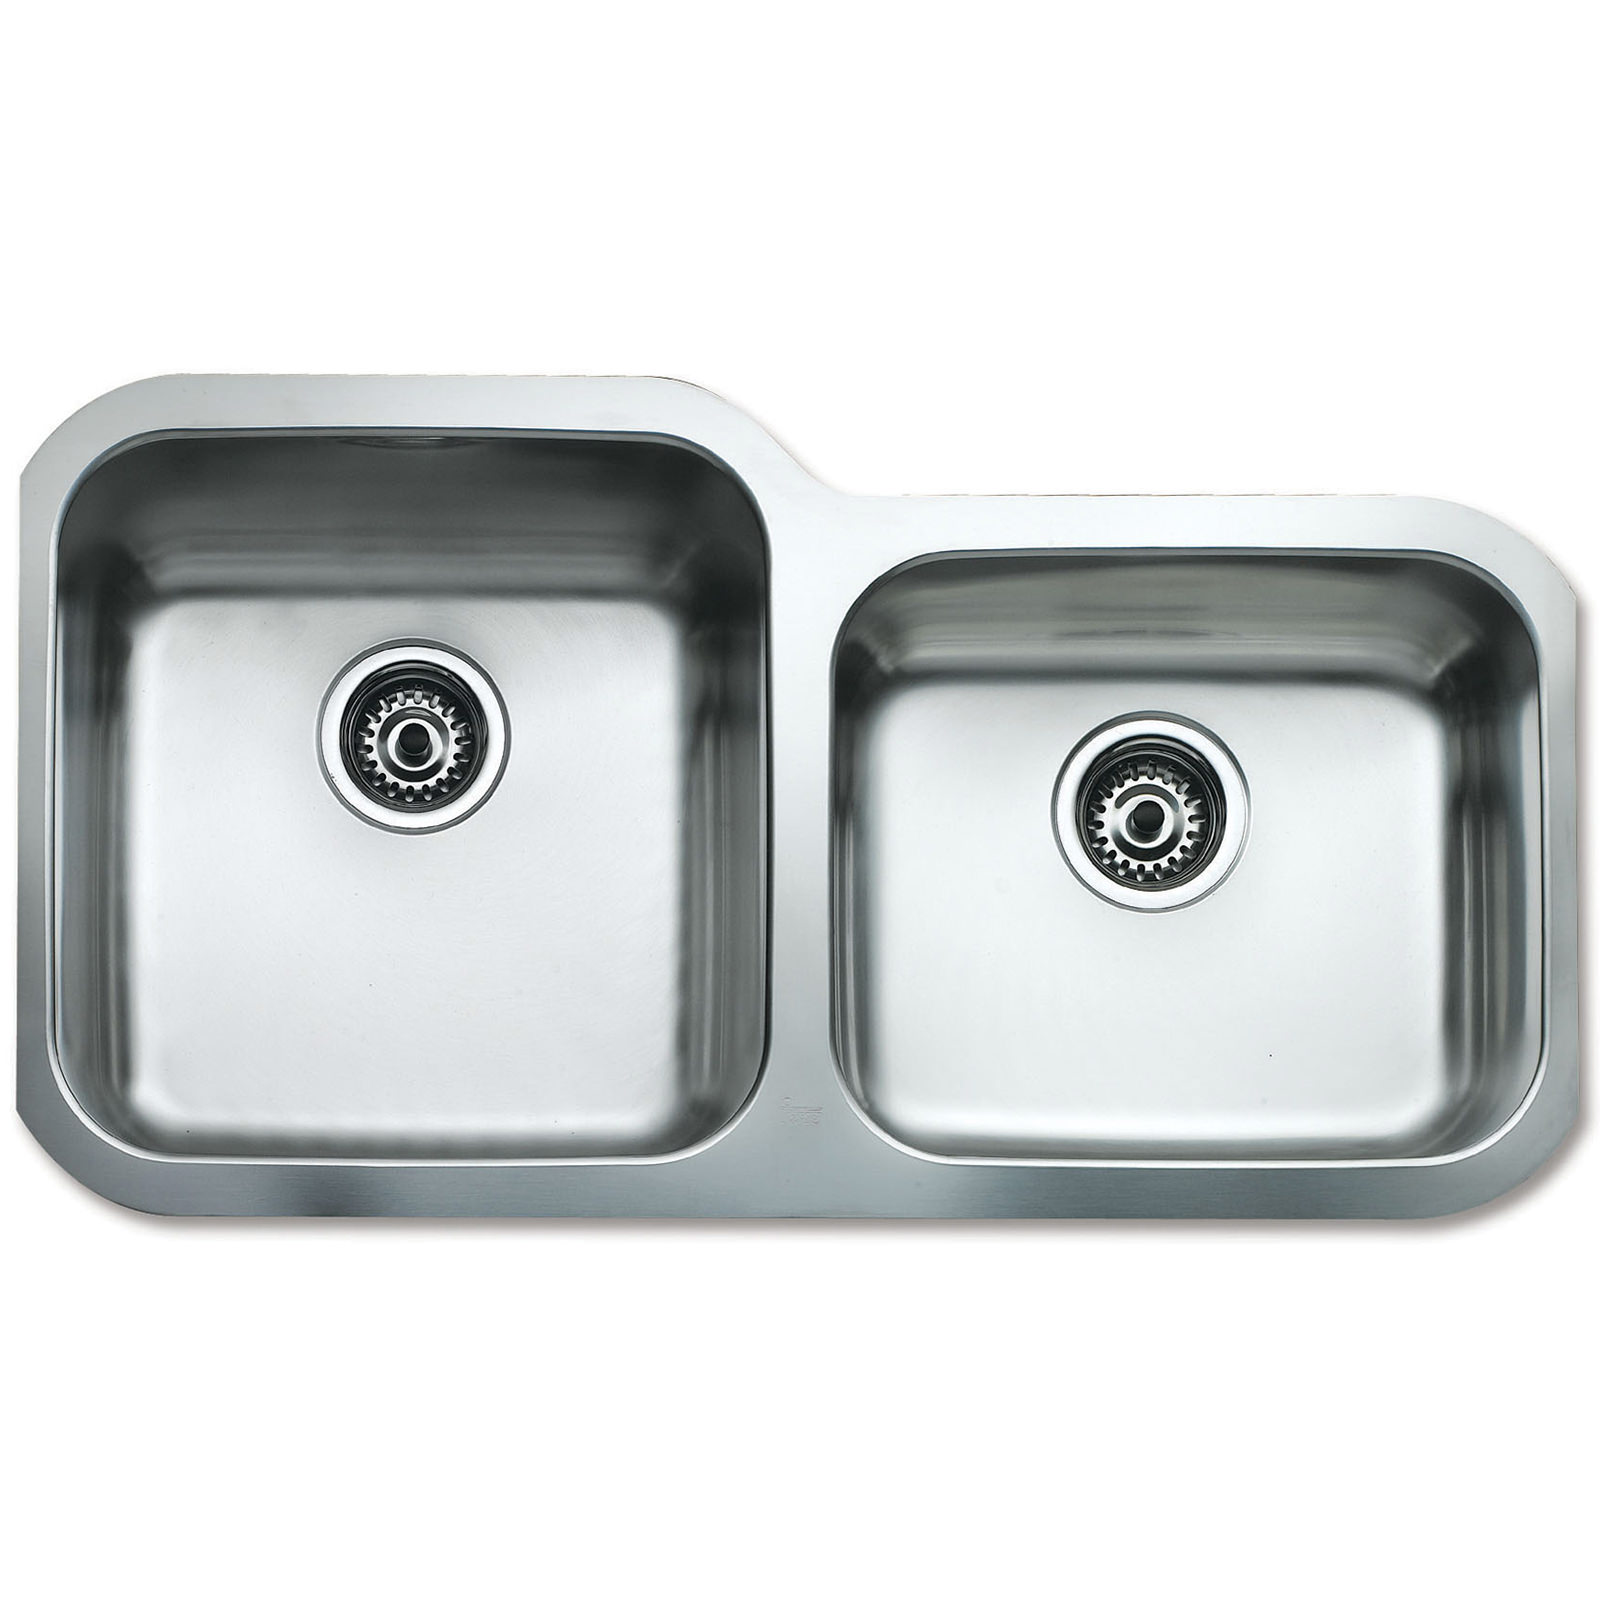 Teka Be 2b 880 Stainless Steel 2 0 Right Hand Small Bowl